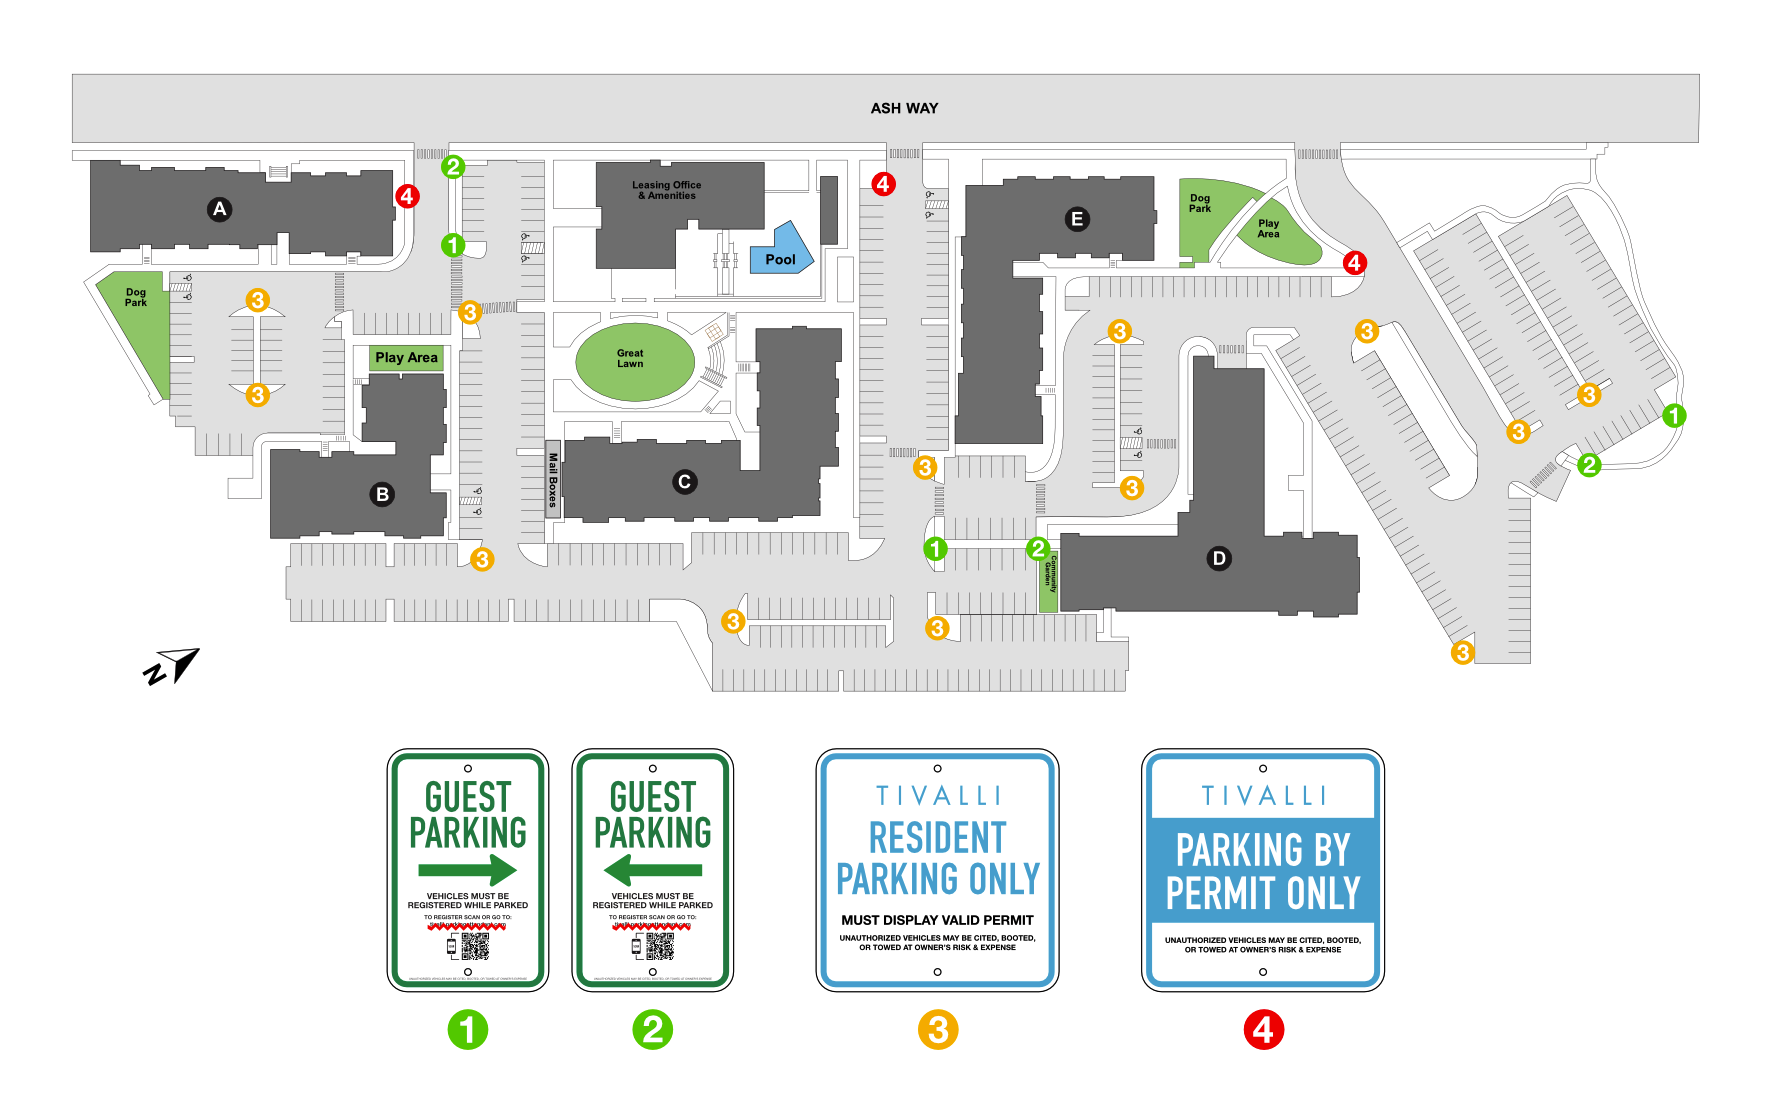 Parking signage and space allocation plan for Tivalli.